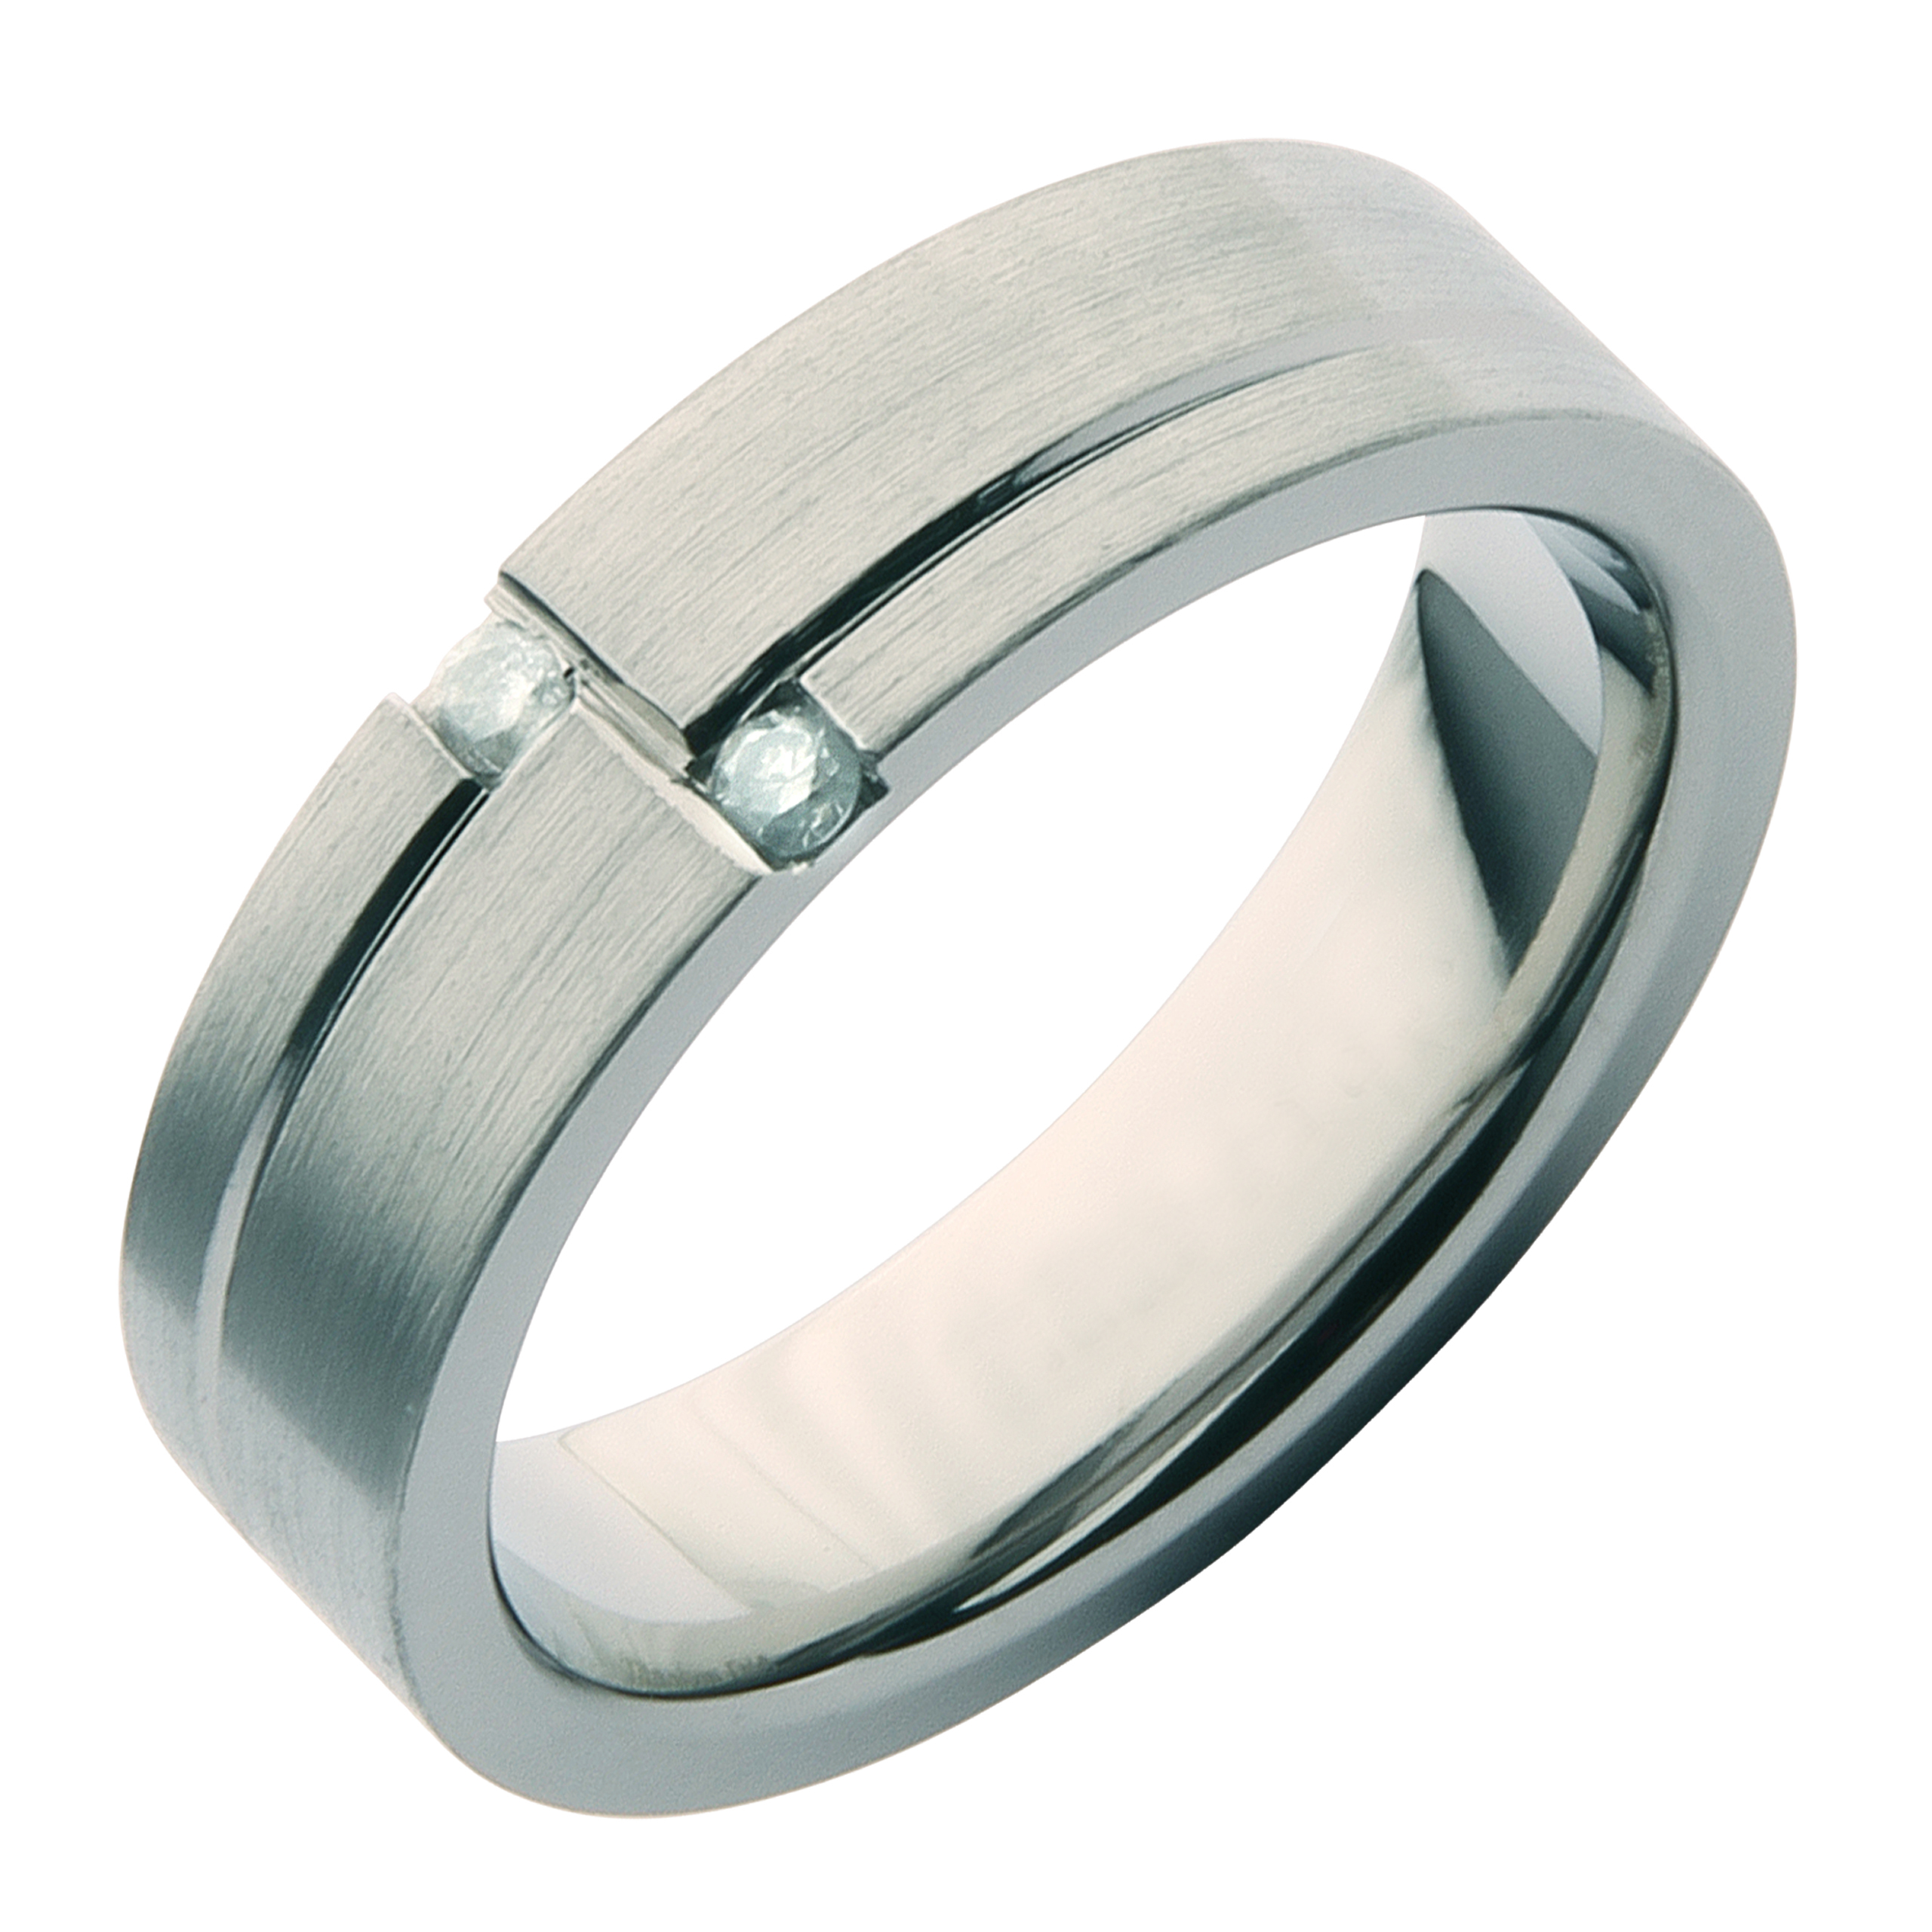 polished rings engraving wedding high ring free for tungsten couple pure item carbide normal